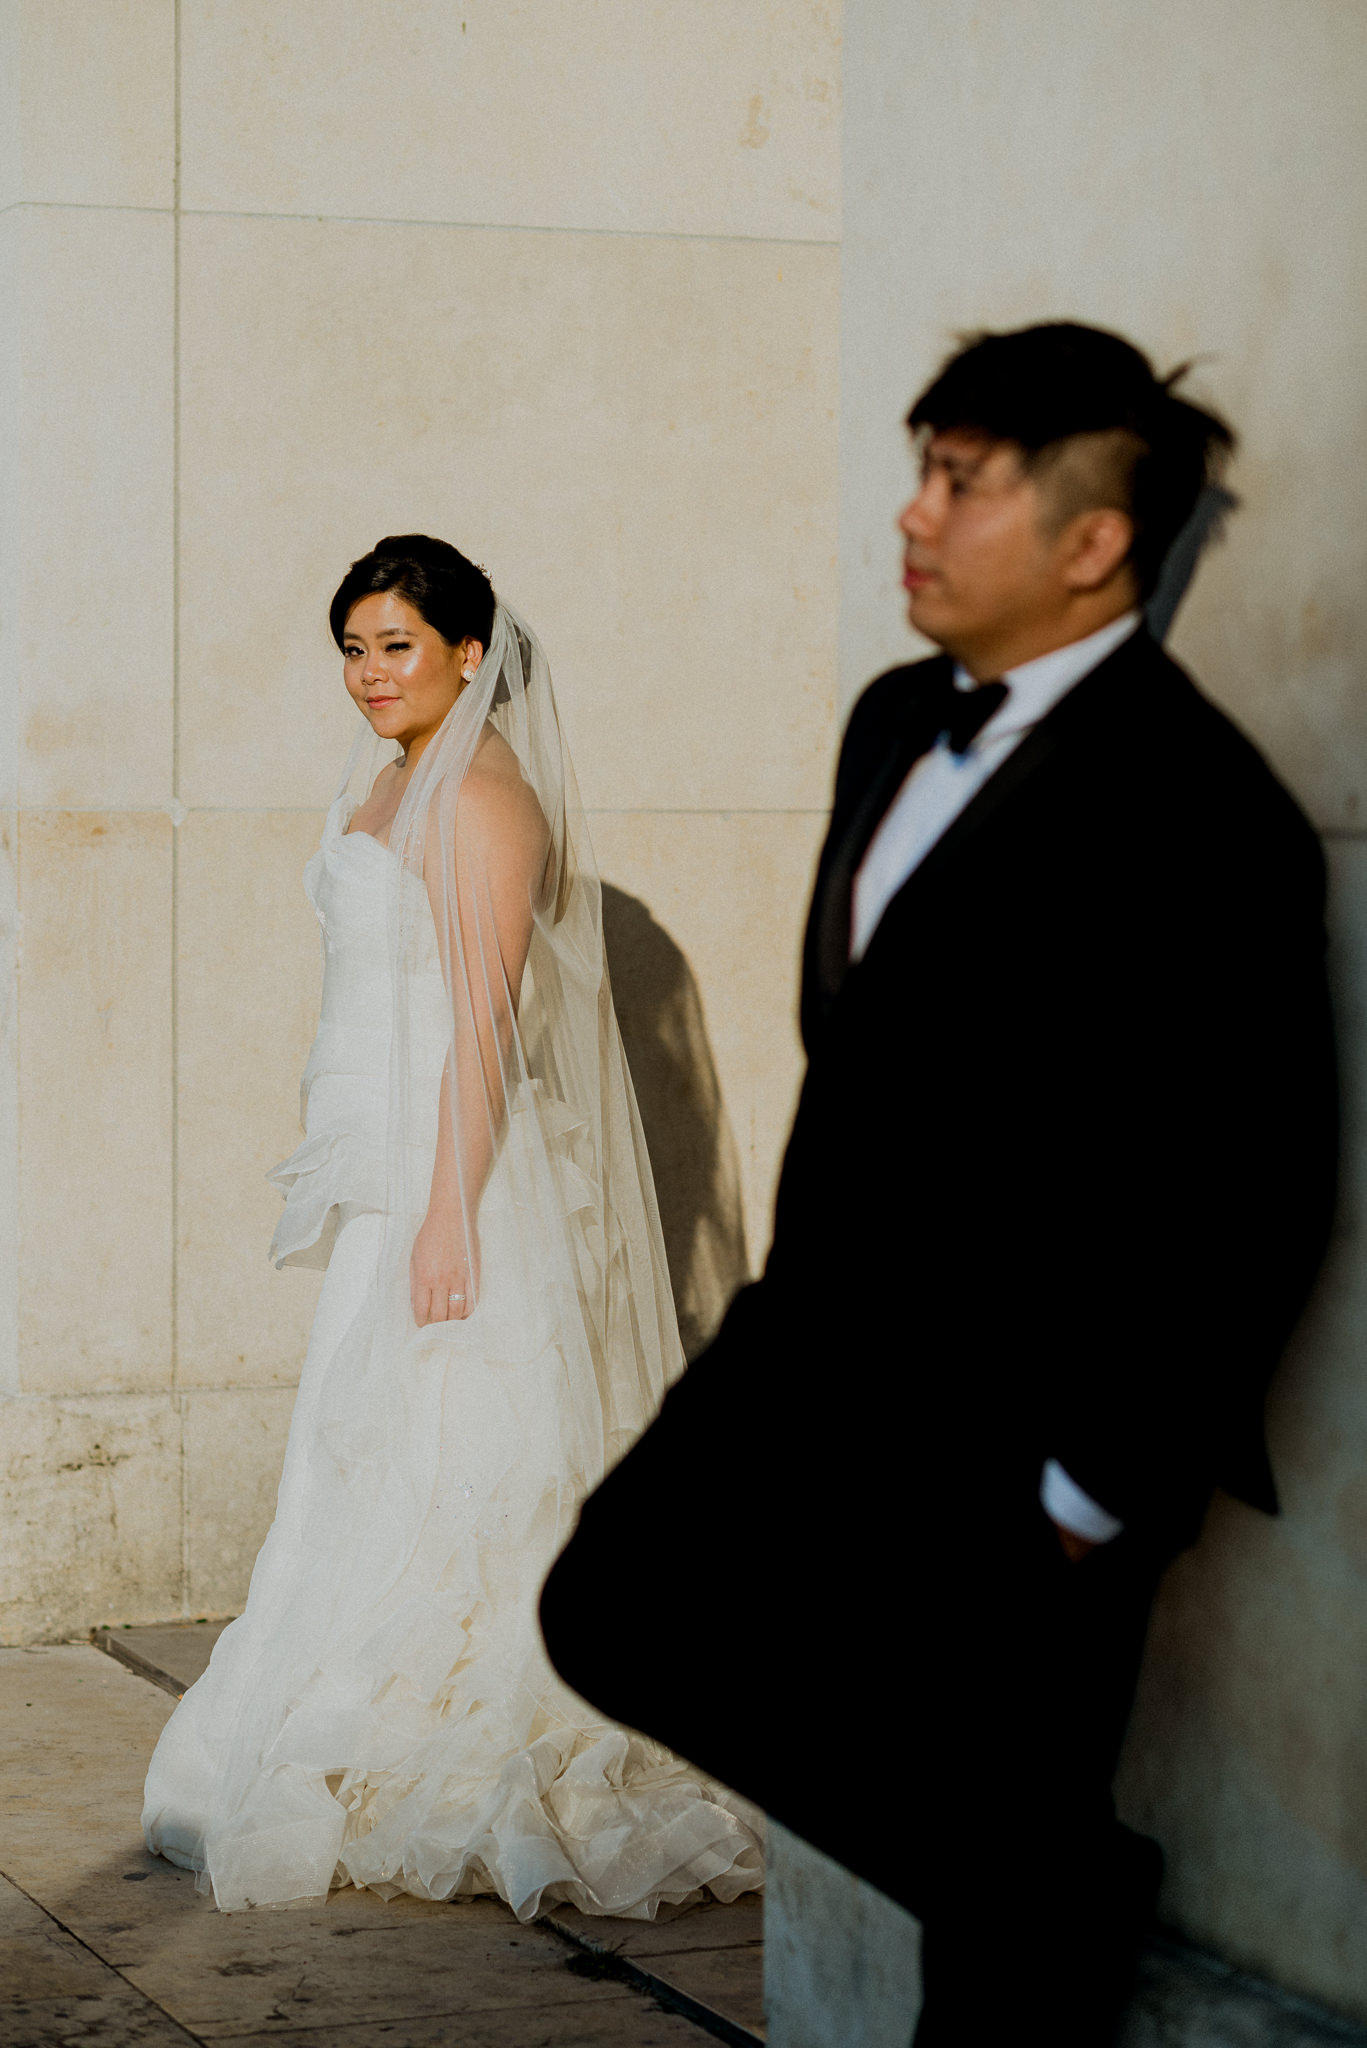 Bride poses in background as groom is out of focus in foreground